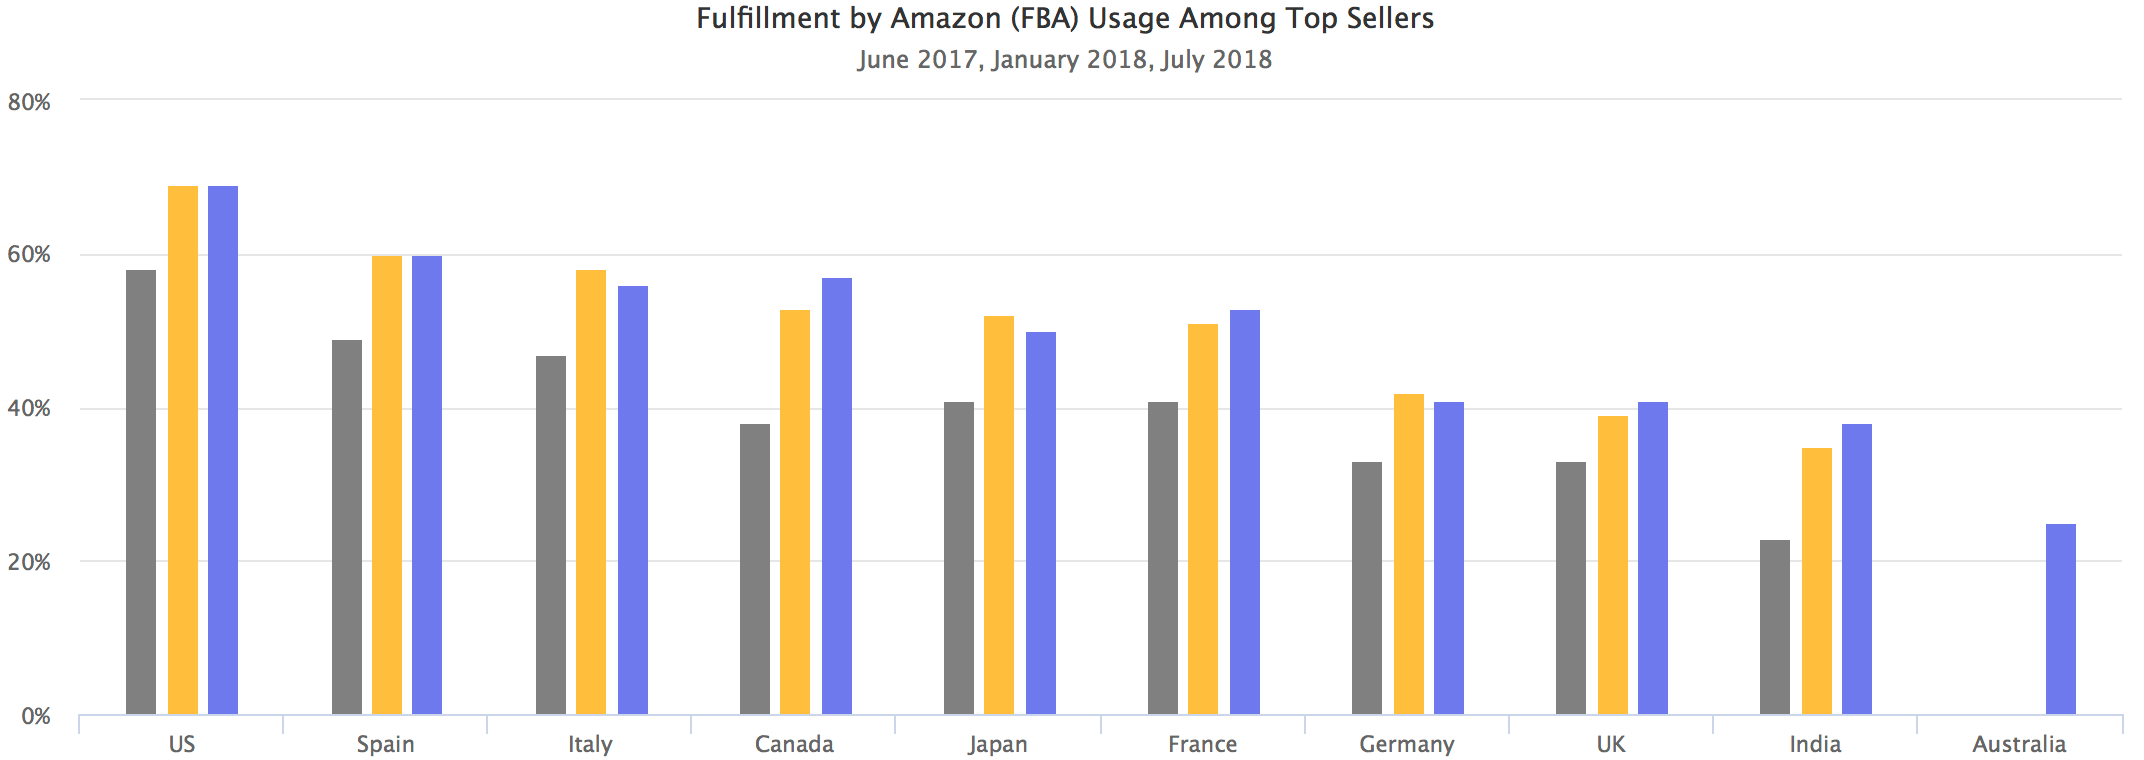 Fulfillment by Amazon (FBA) Usage Among Top Sellers